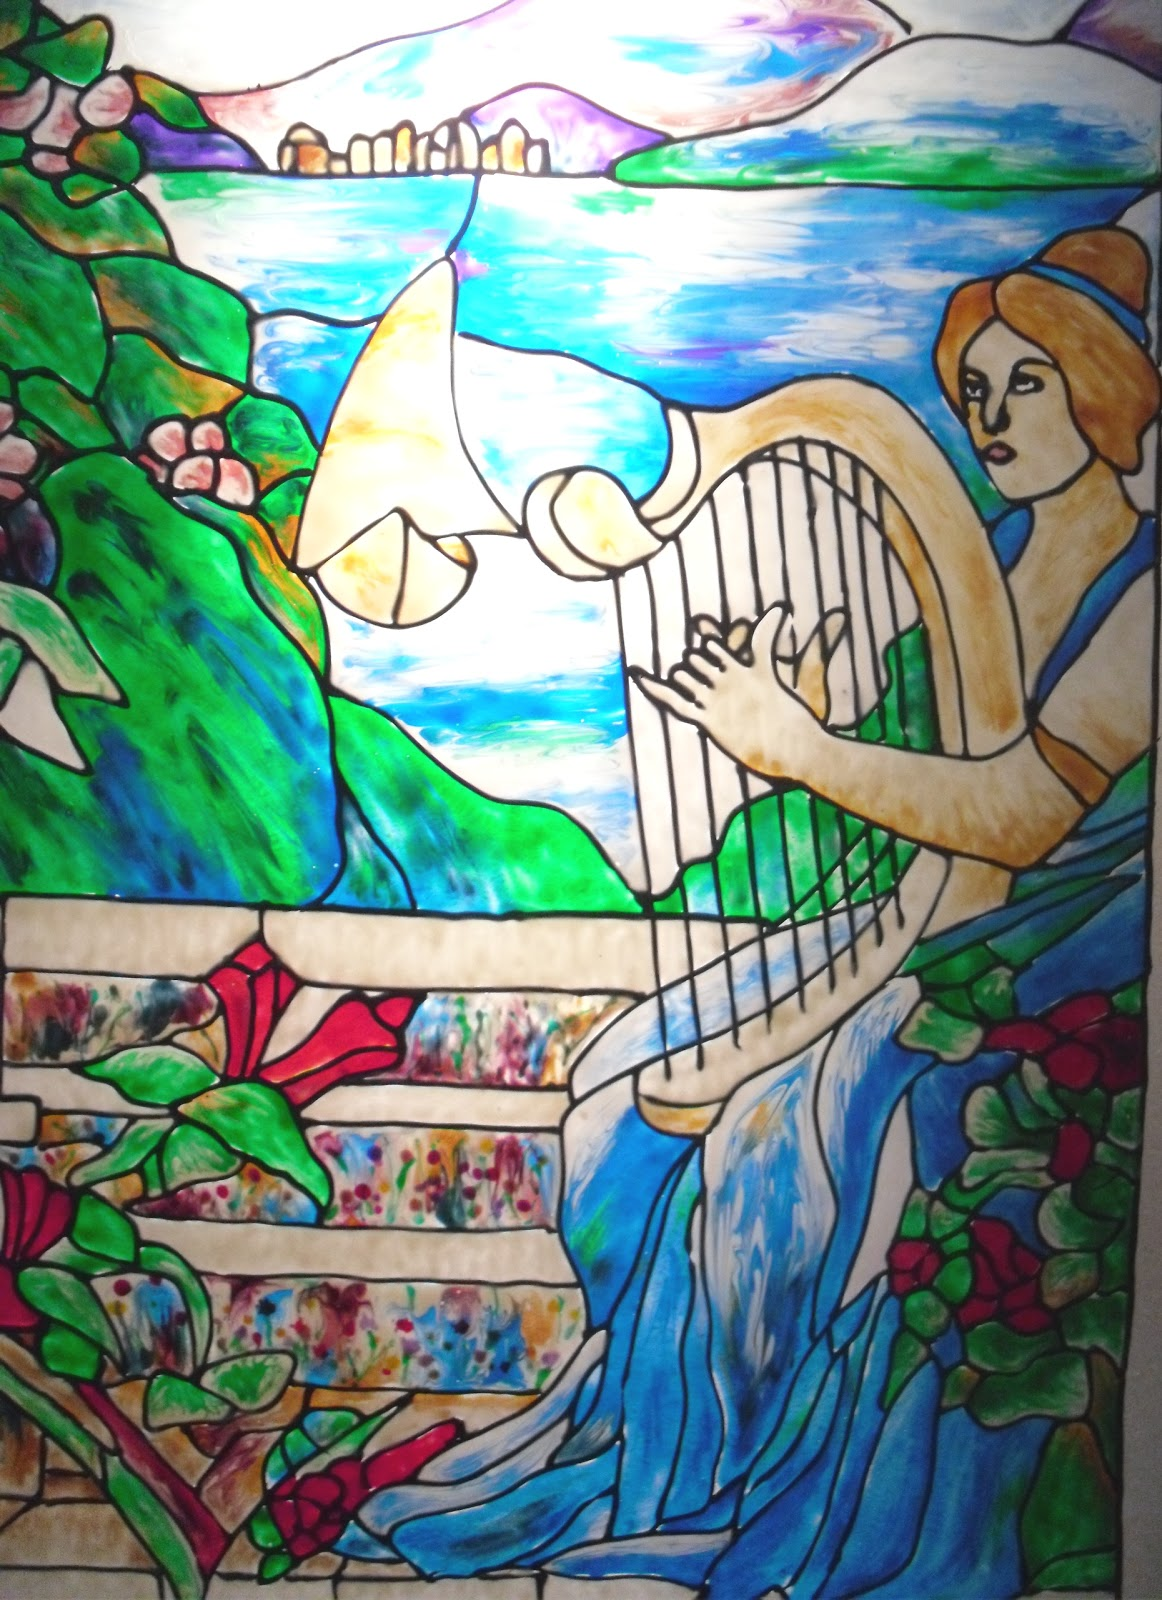 Cathy lynch paintings design stained glass mural for Mural glass painting